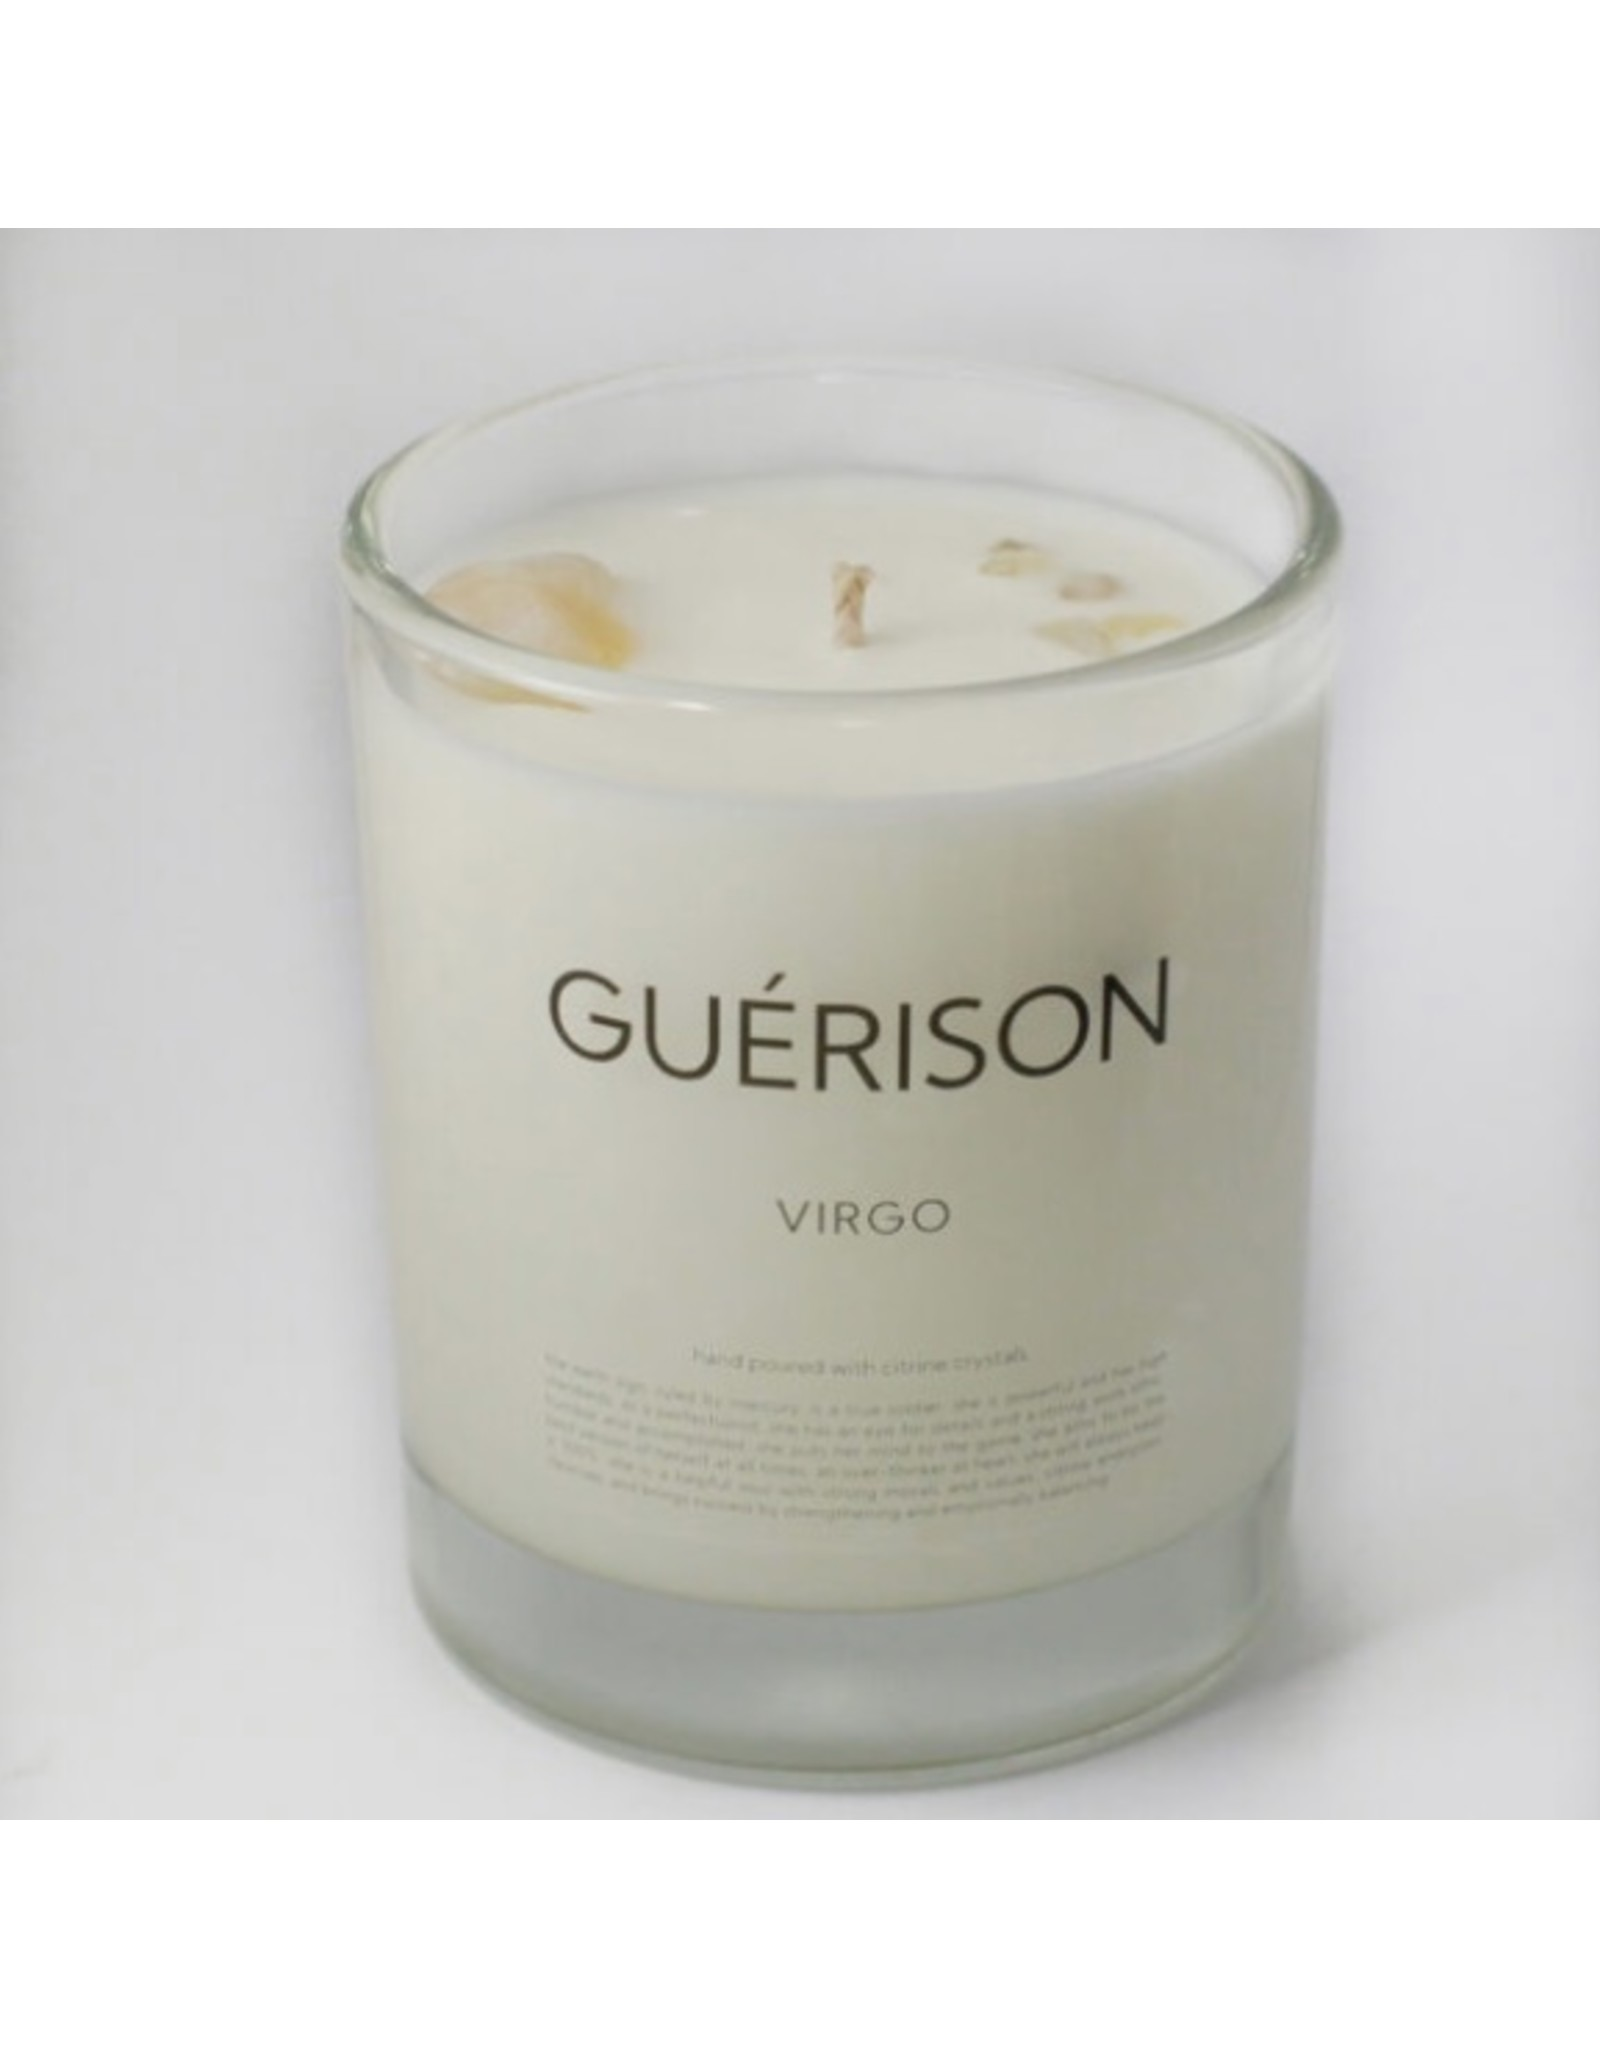 Guérison Virgo Candle, 220g